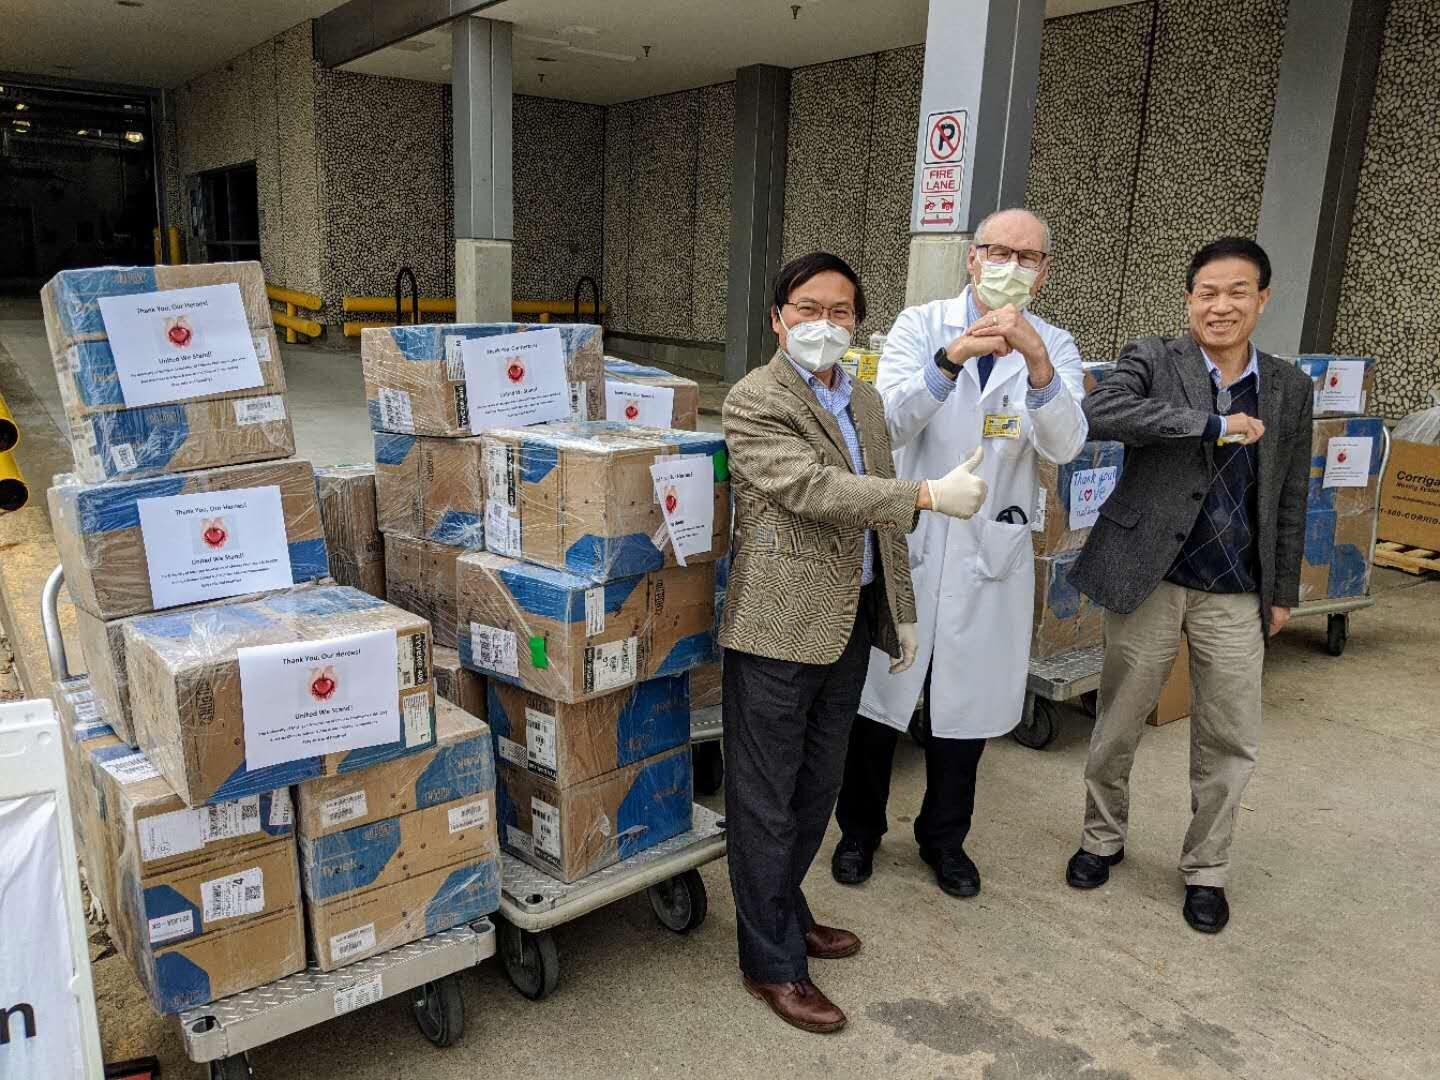 Chinese faculty raise funds for COVID